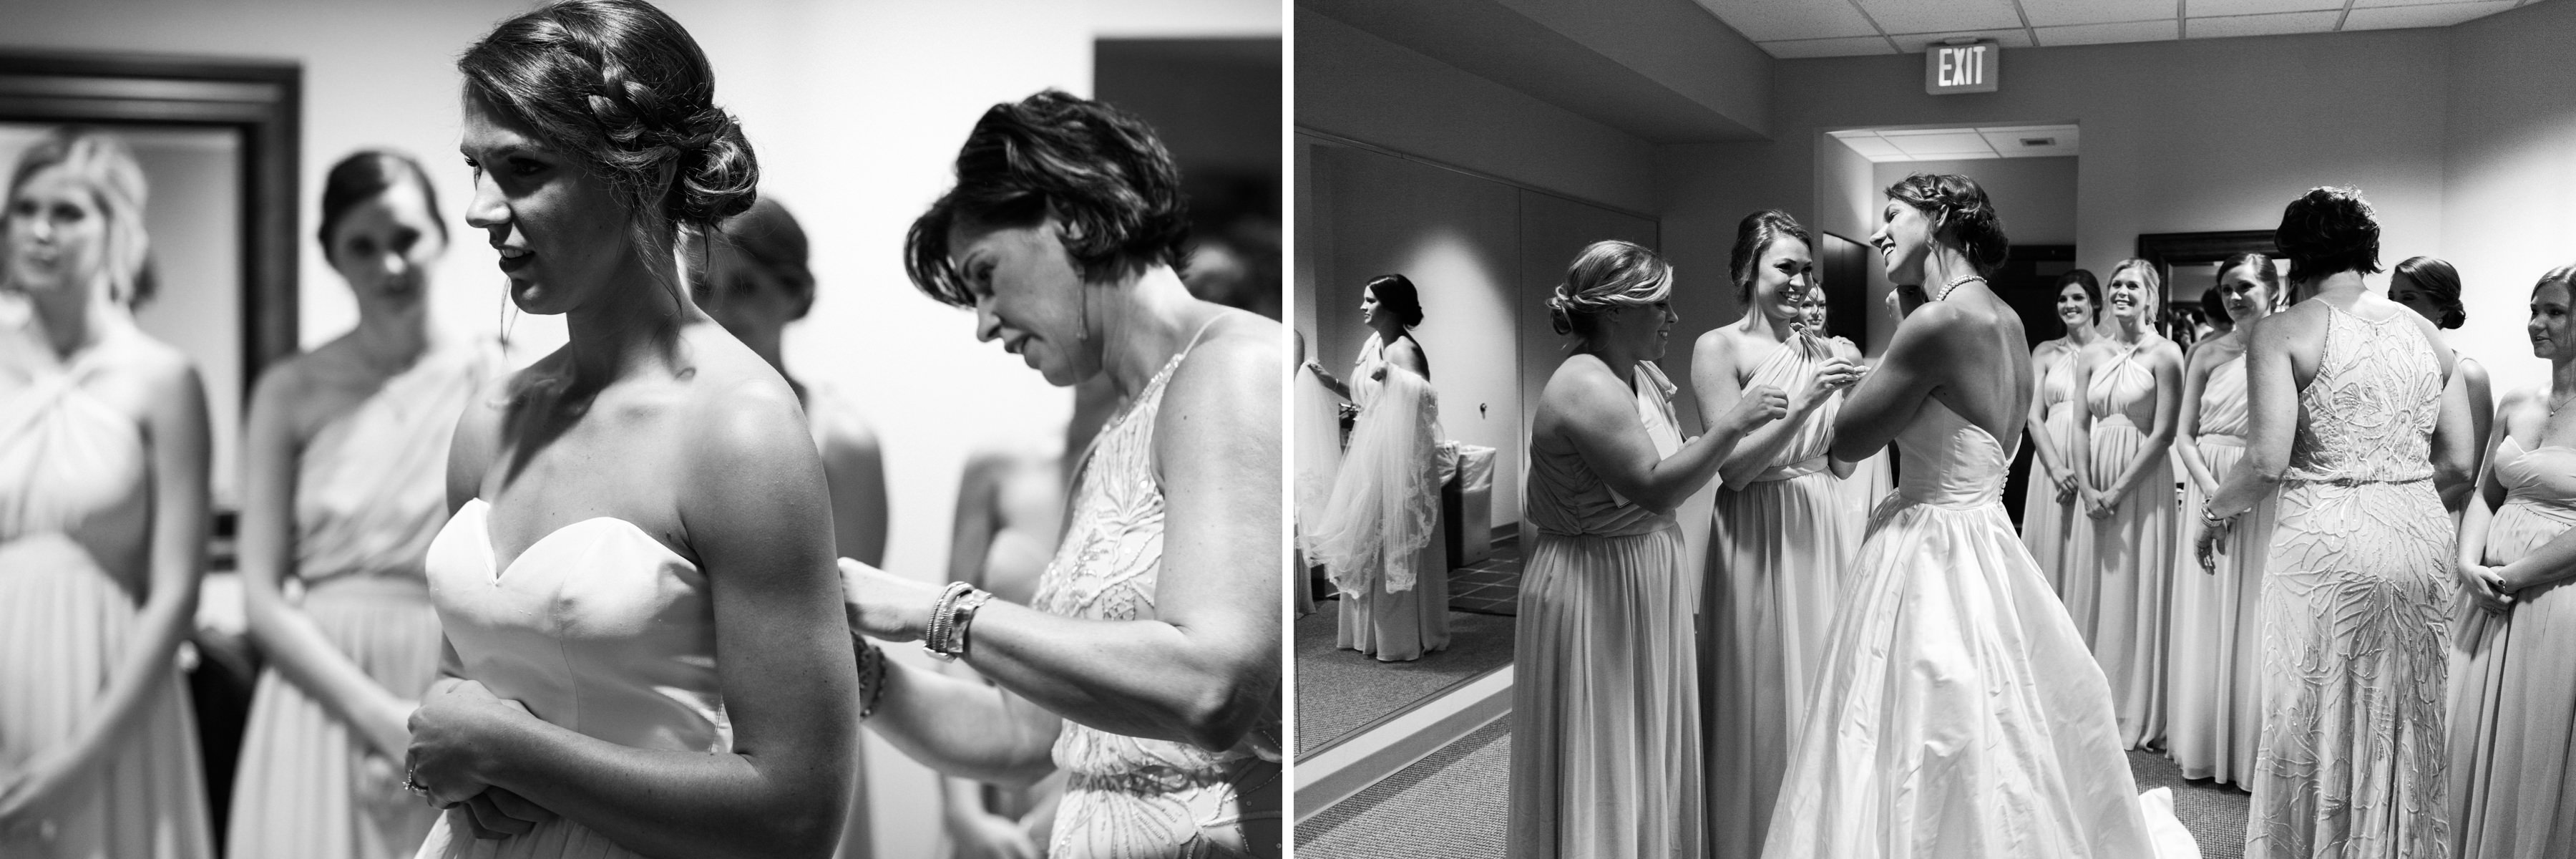 GRISWOLD_WEDDING_BIRMINGHAM_ALABAMA_WEDDING_PHOTOGRAPHY_014